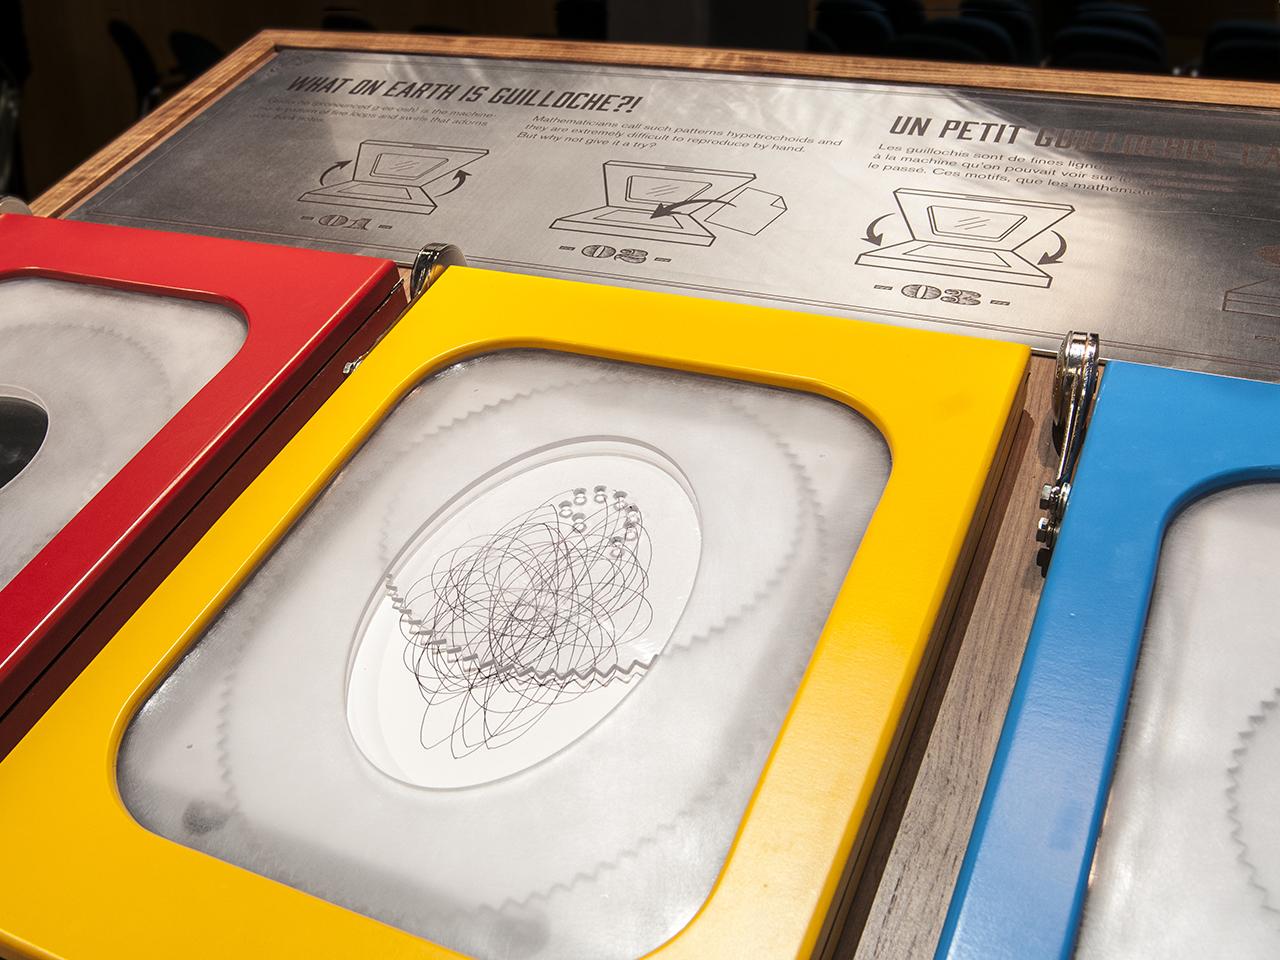 A machine for drawing patterns